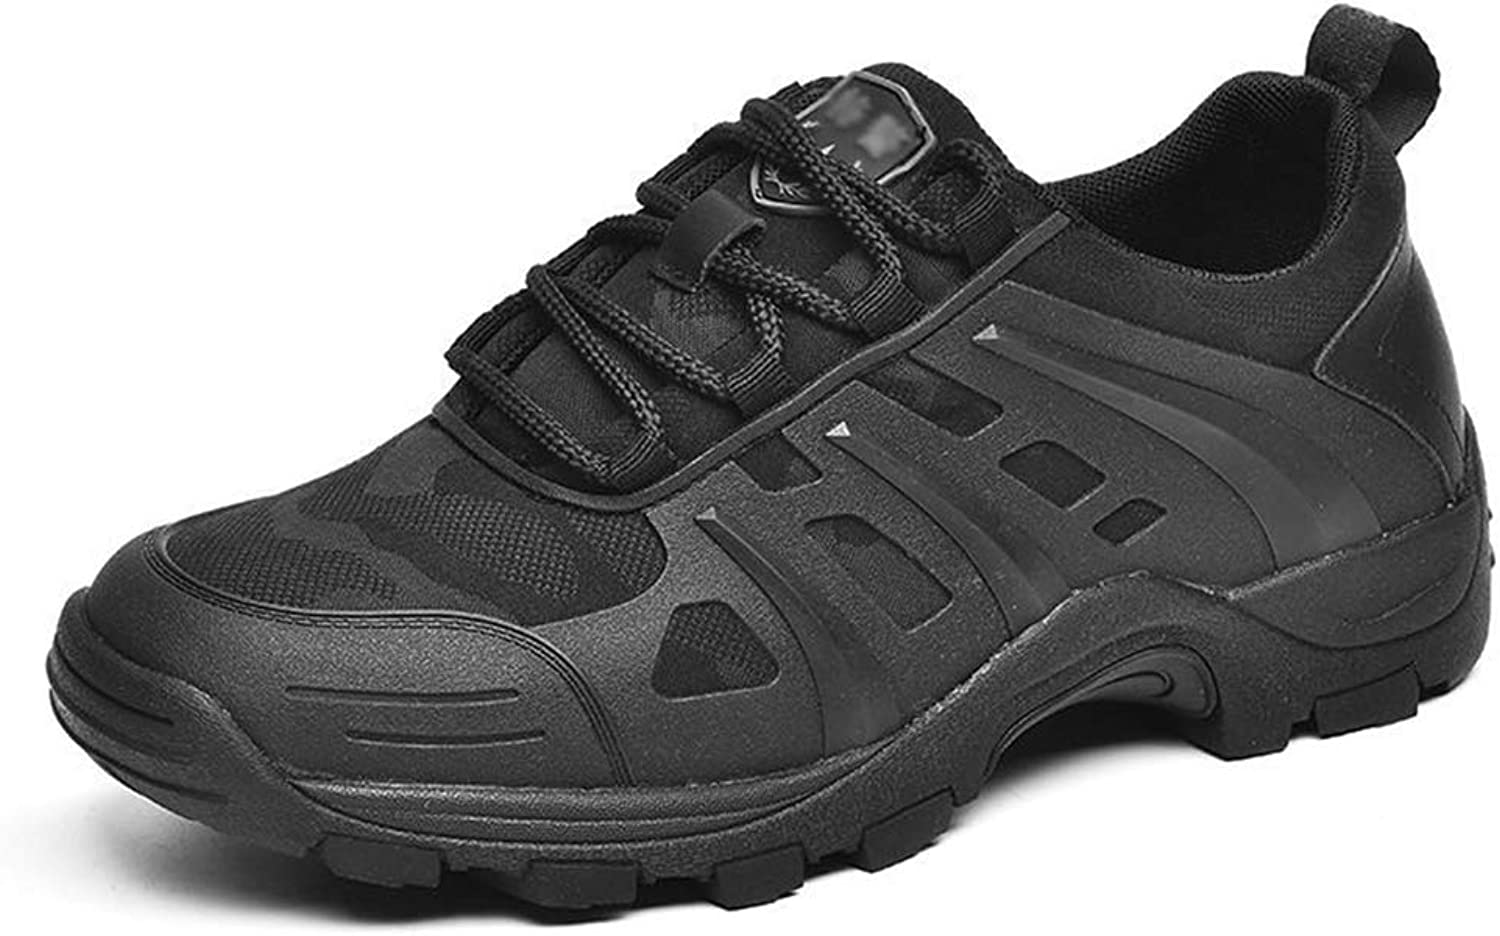 Suetar Men's Military Training Sport shoes Spring and Summer Breathable Non-Slip Running shoes MS68